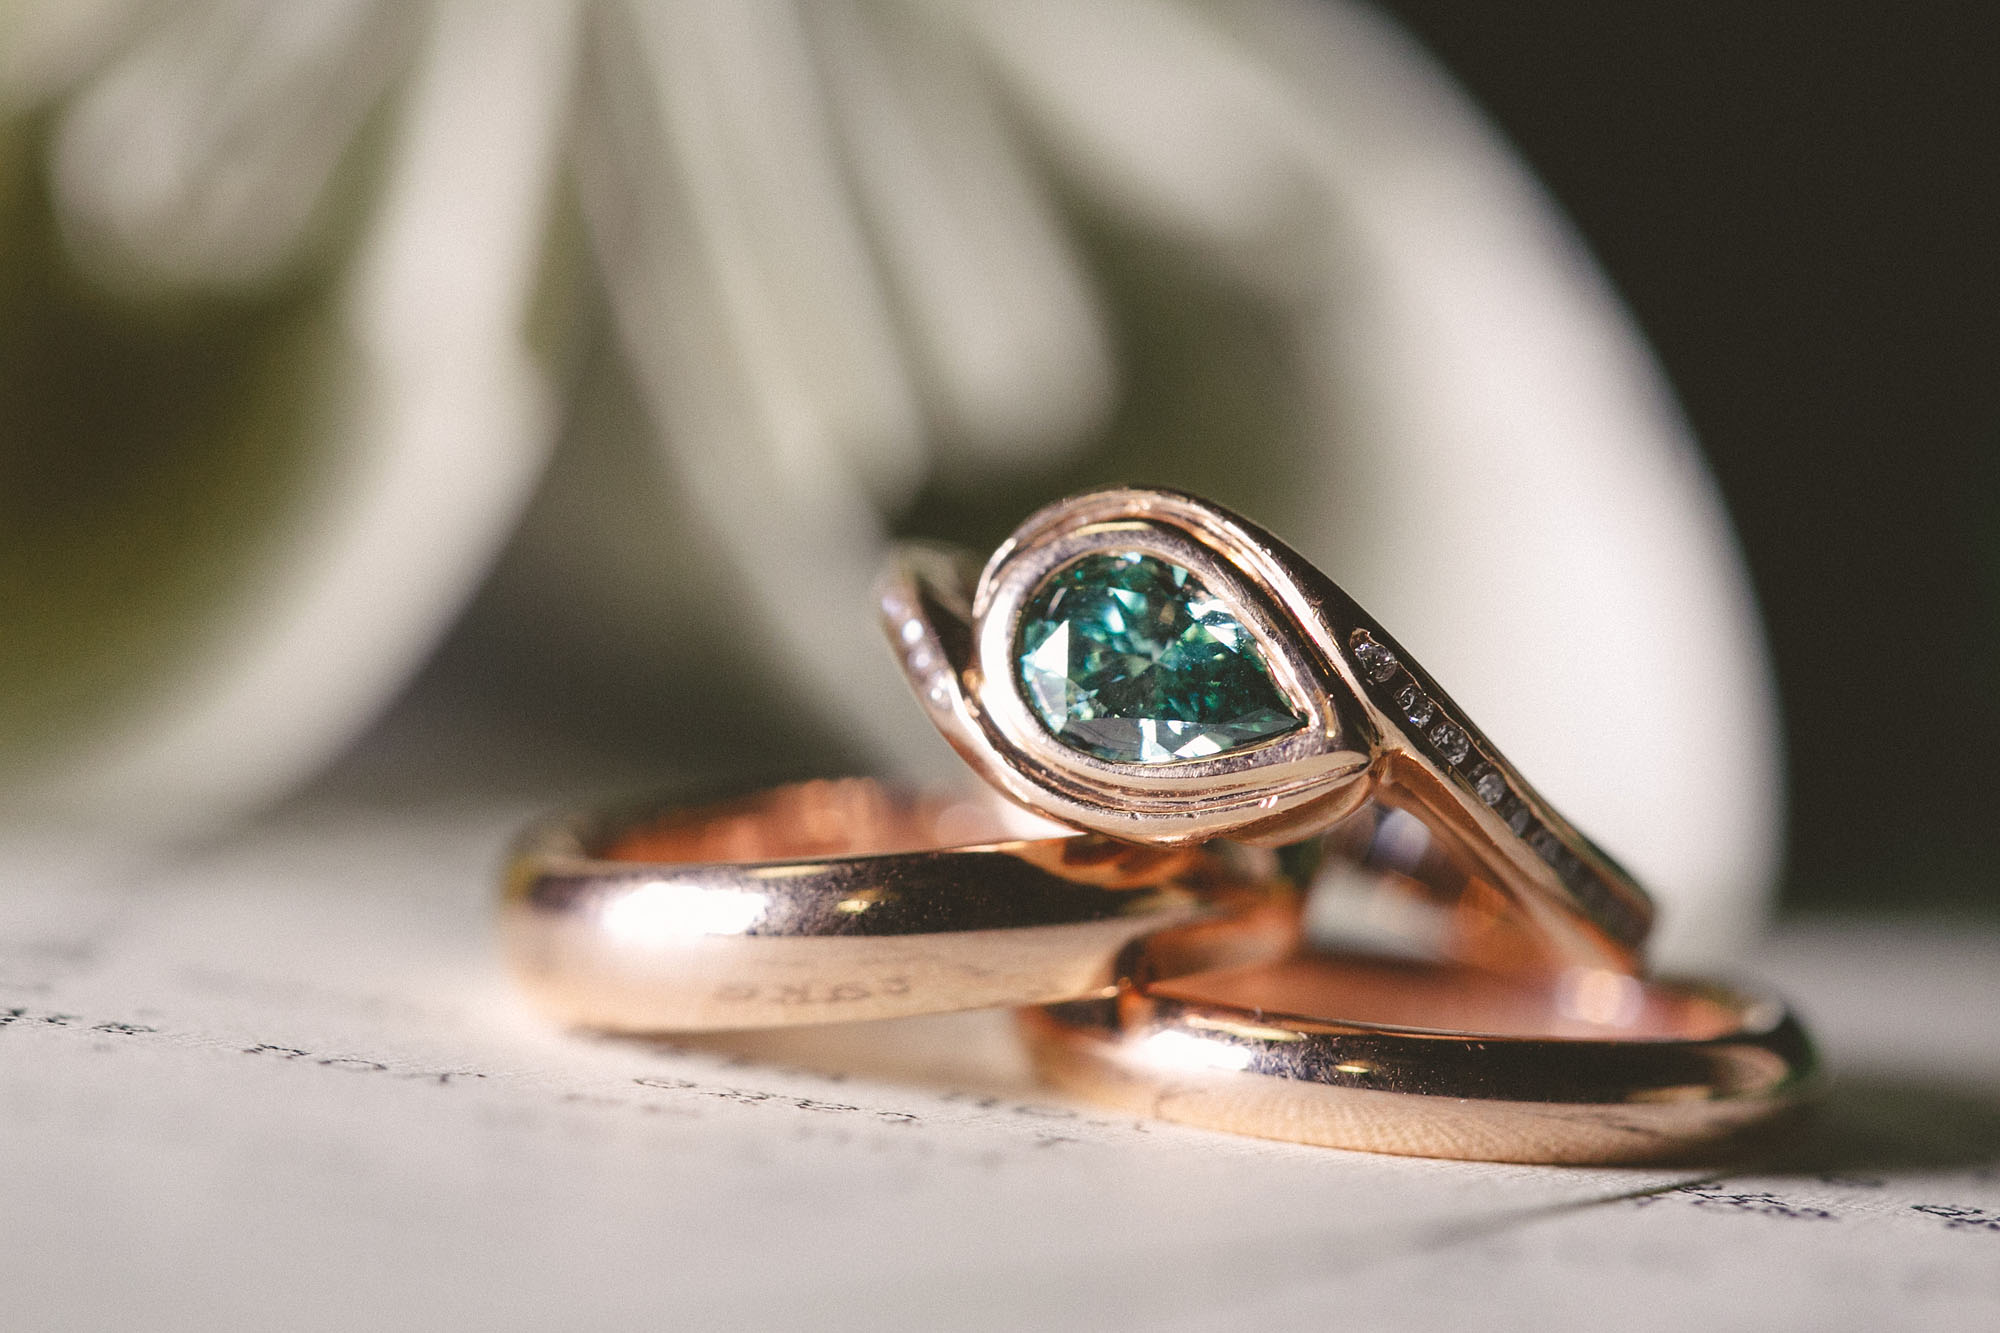 Rose gold wedding set for literary lovebirds